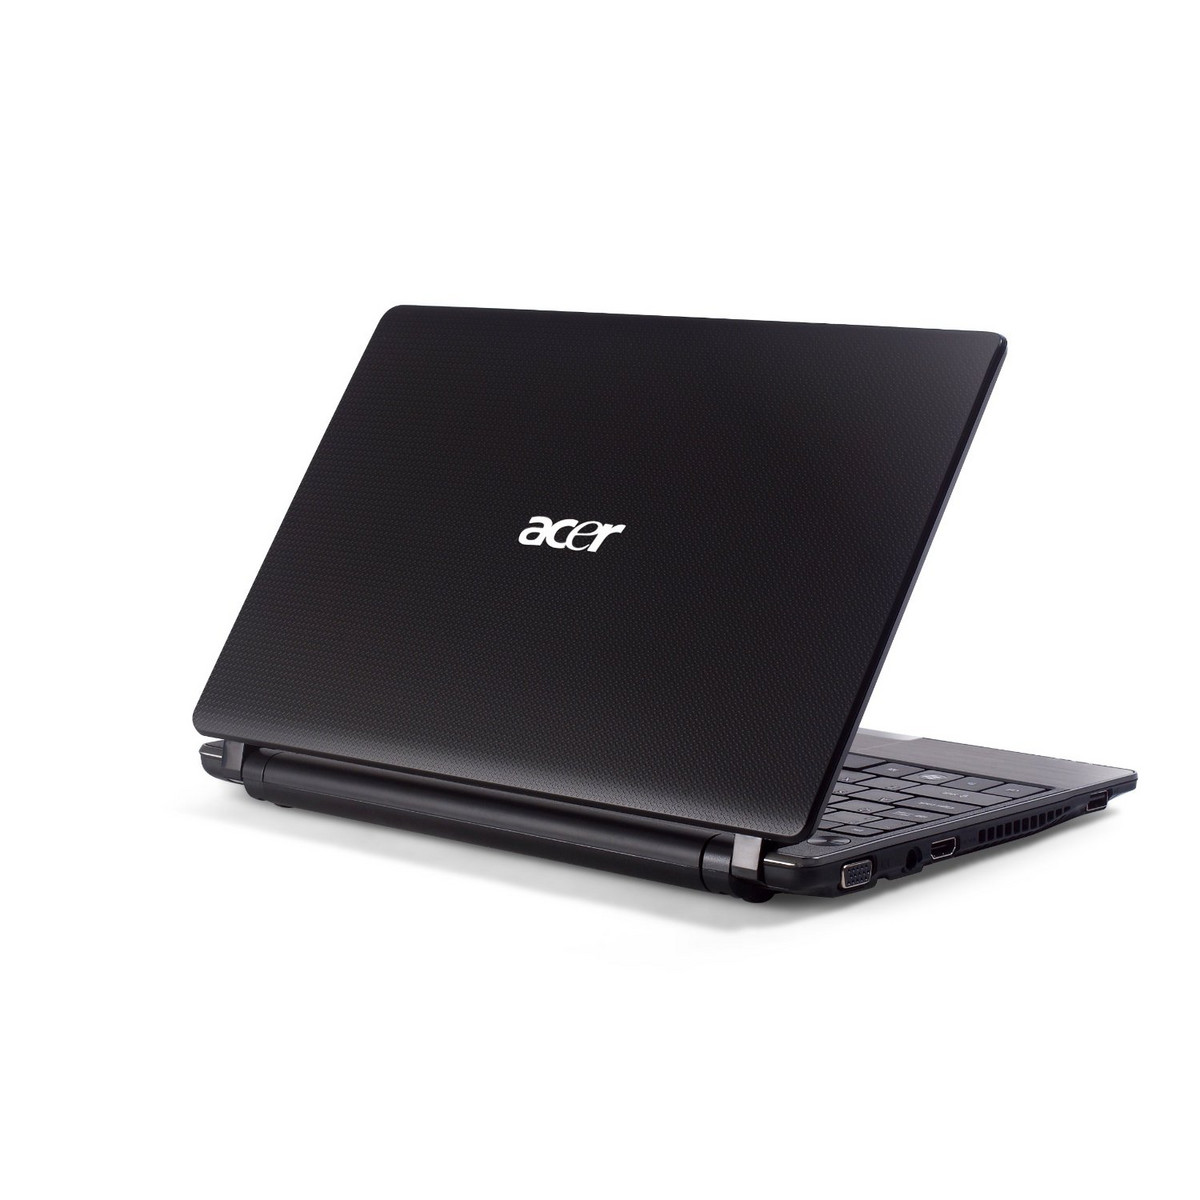 ACER ASPIRE 1830 TIMELINEX NOTEBOOK INTEL VGA DRIVERS (2019)